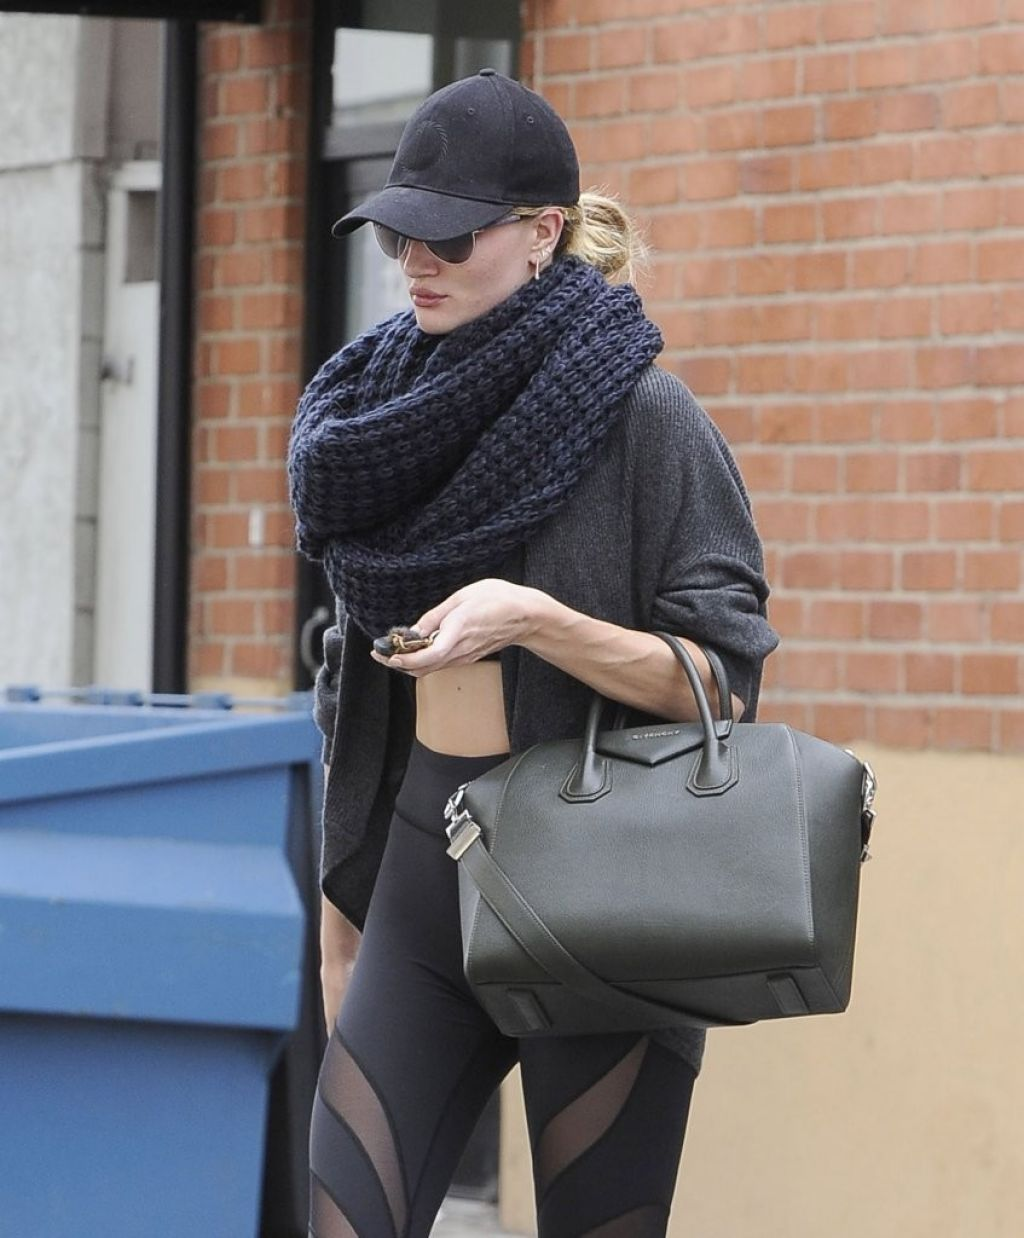 Rosie Huntington-Whiteley Gym Style - Leaving the Gym in Studio City - November 2013